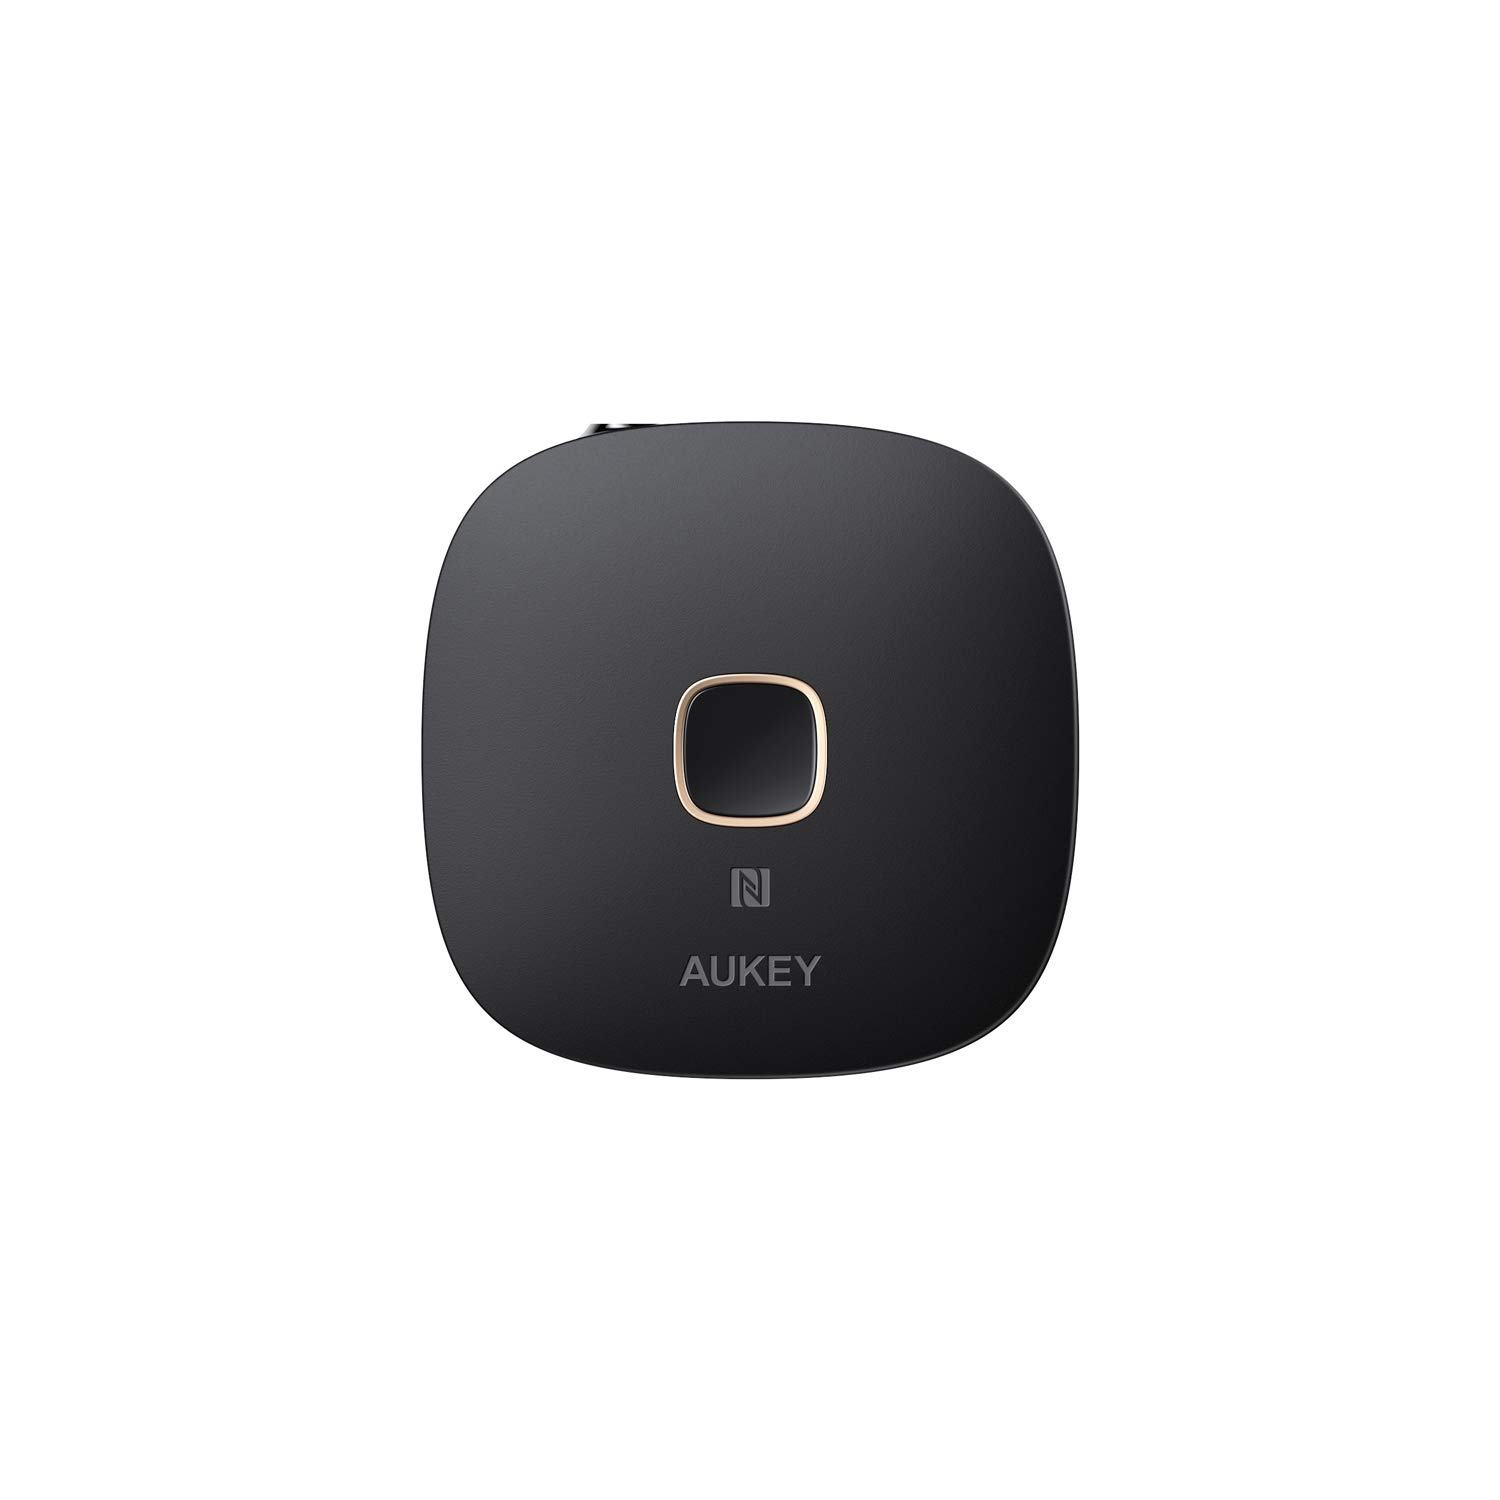 AUKEY Early Prime Day Deals